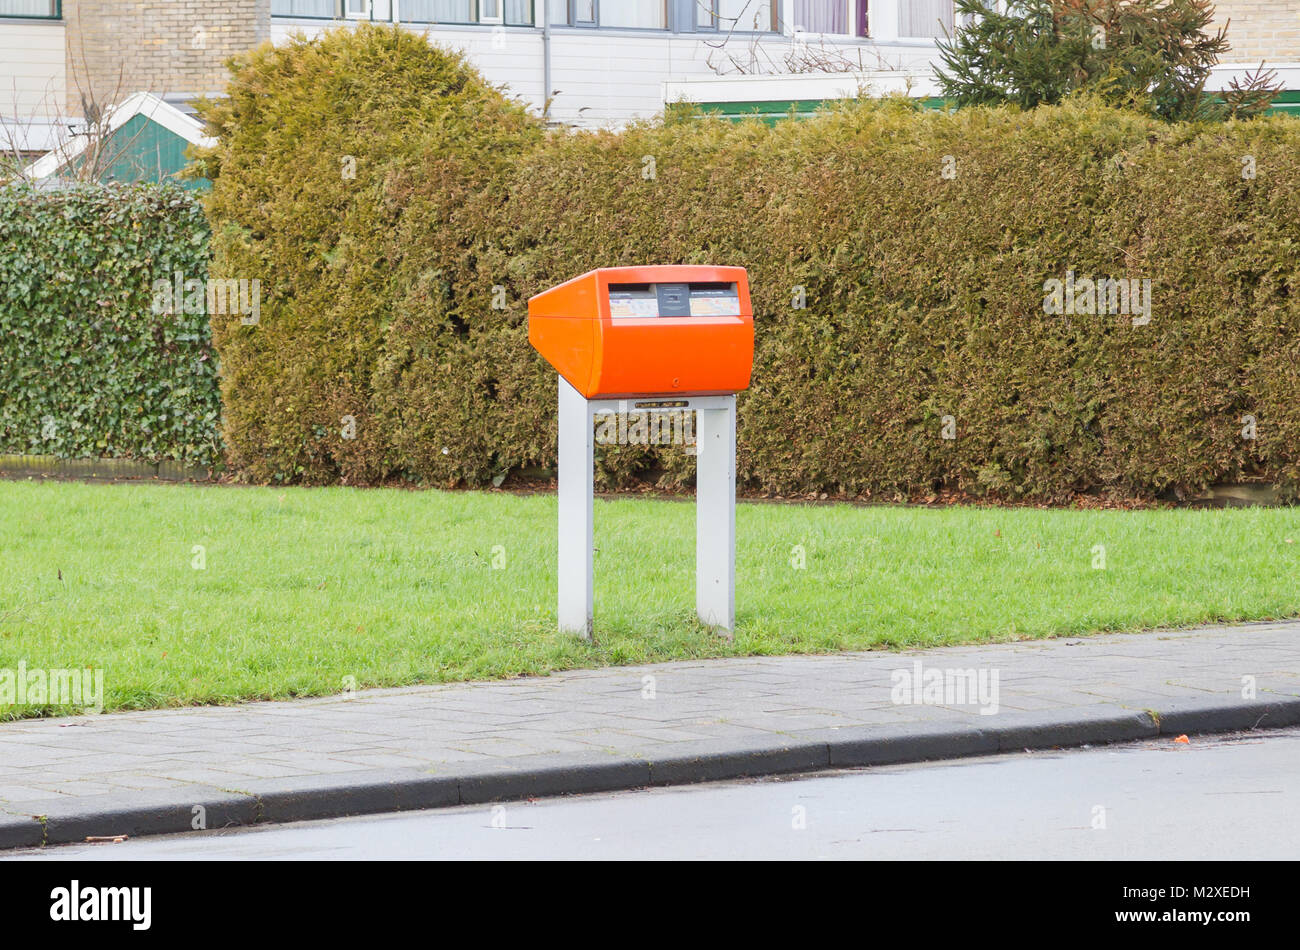 Posting a letter in the Netherlands - Orange letterbox Stock Photo